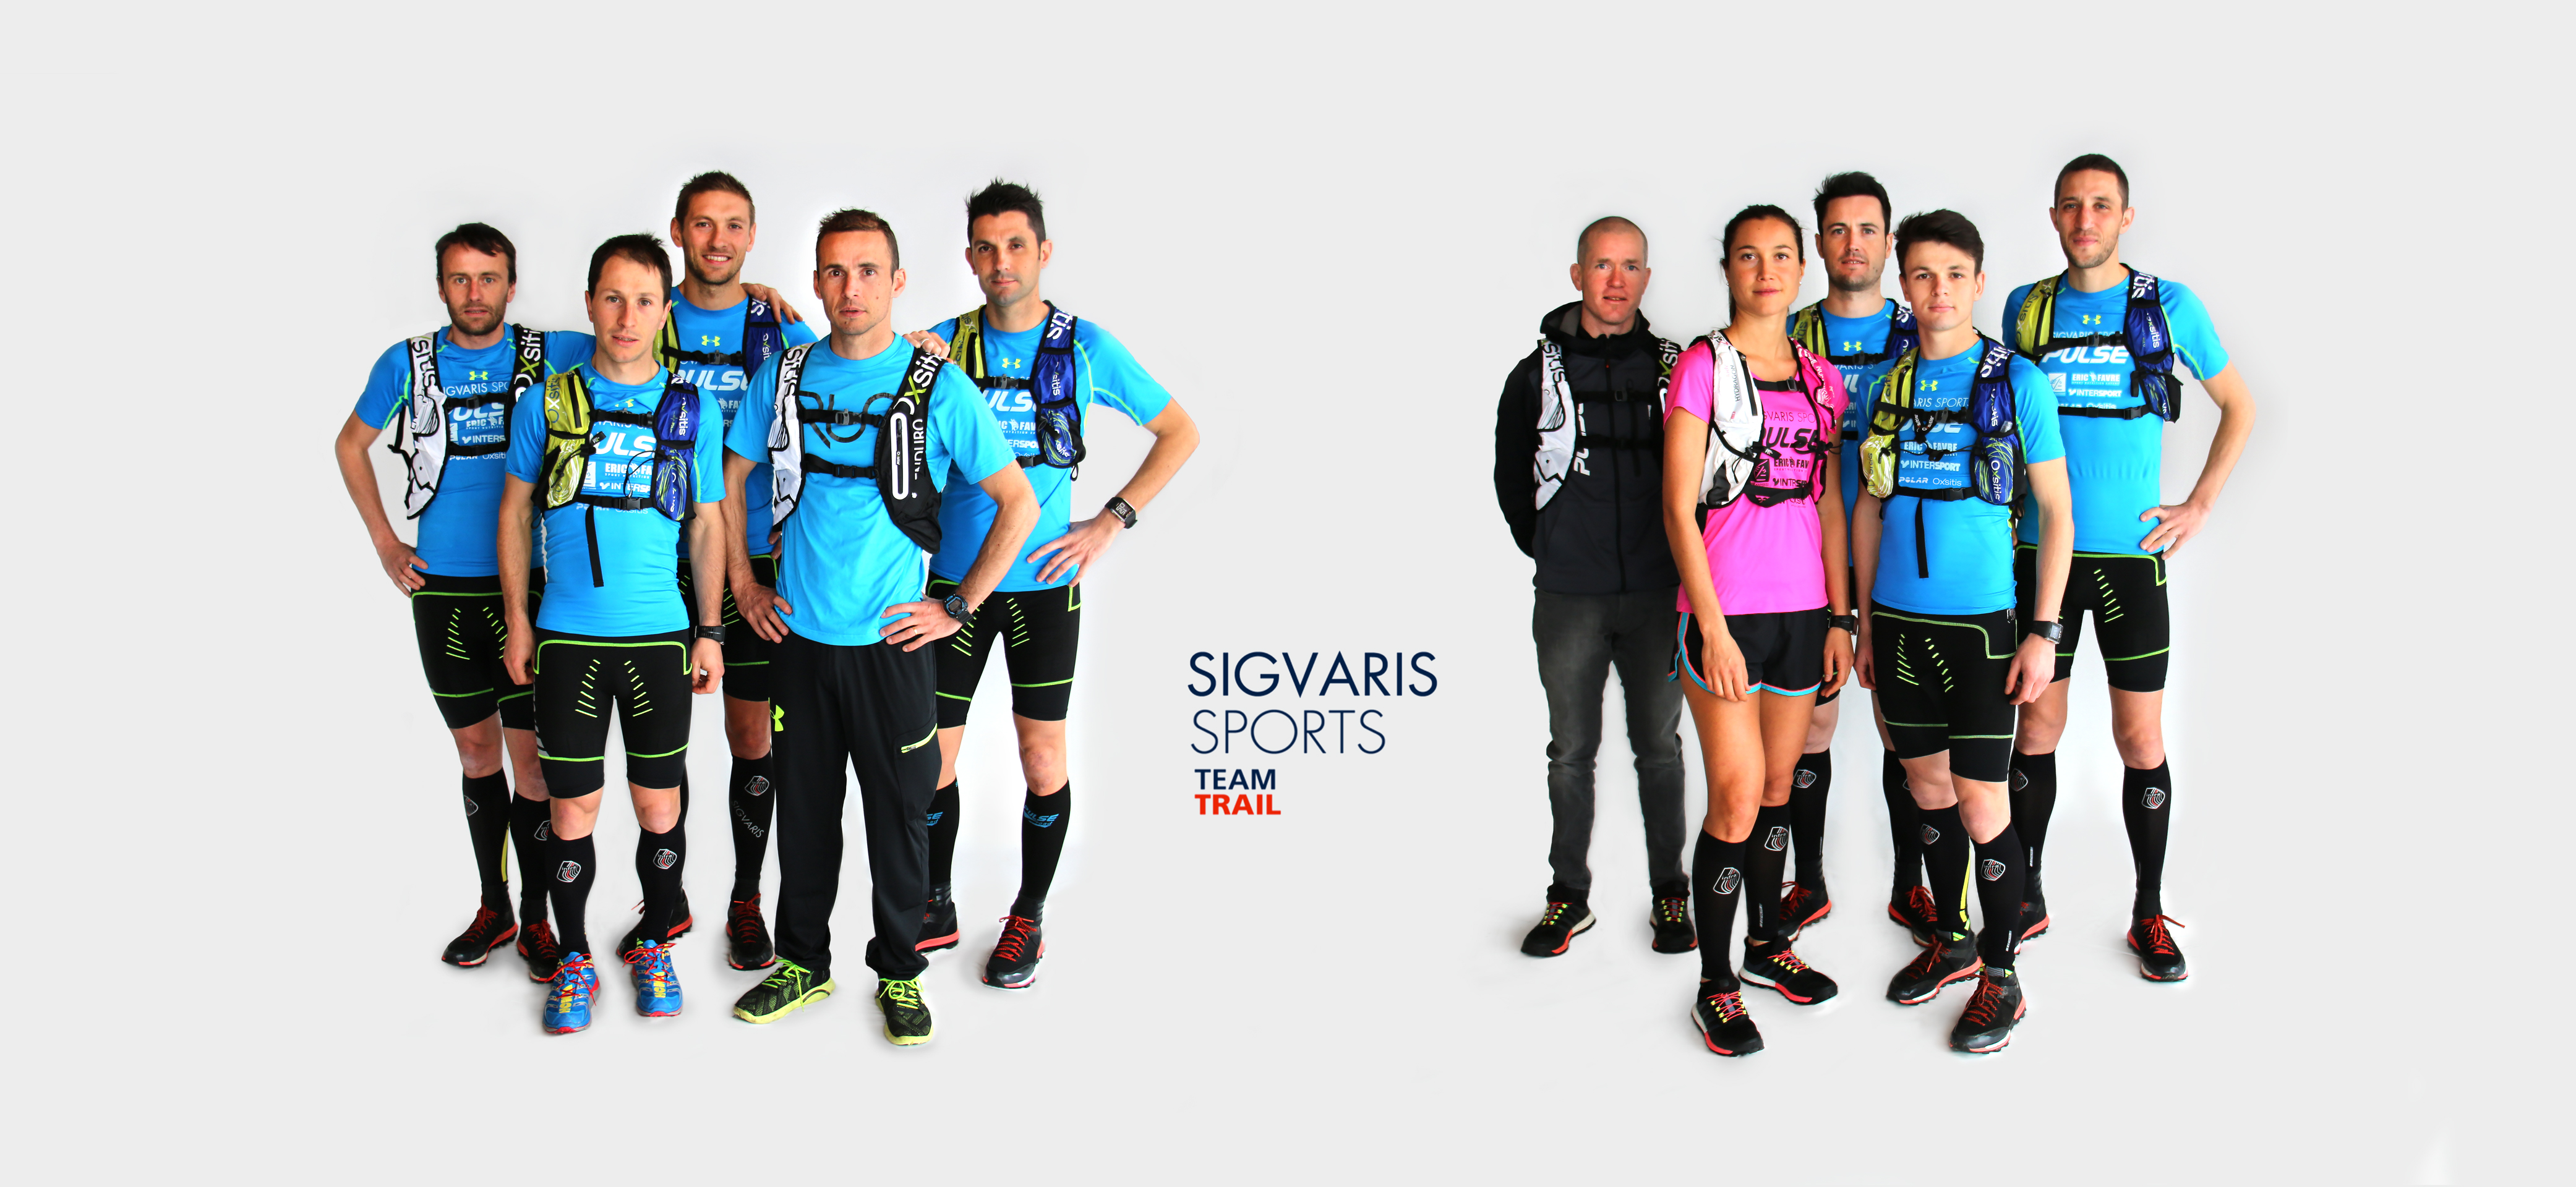 Team Sigvaris Trail Sport